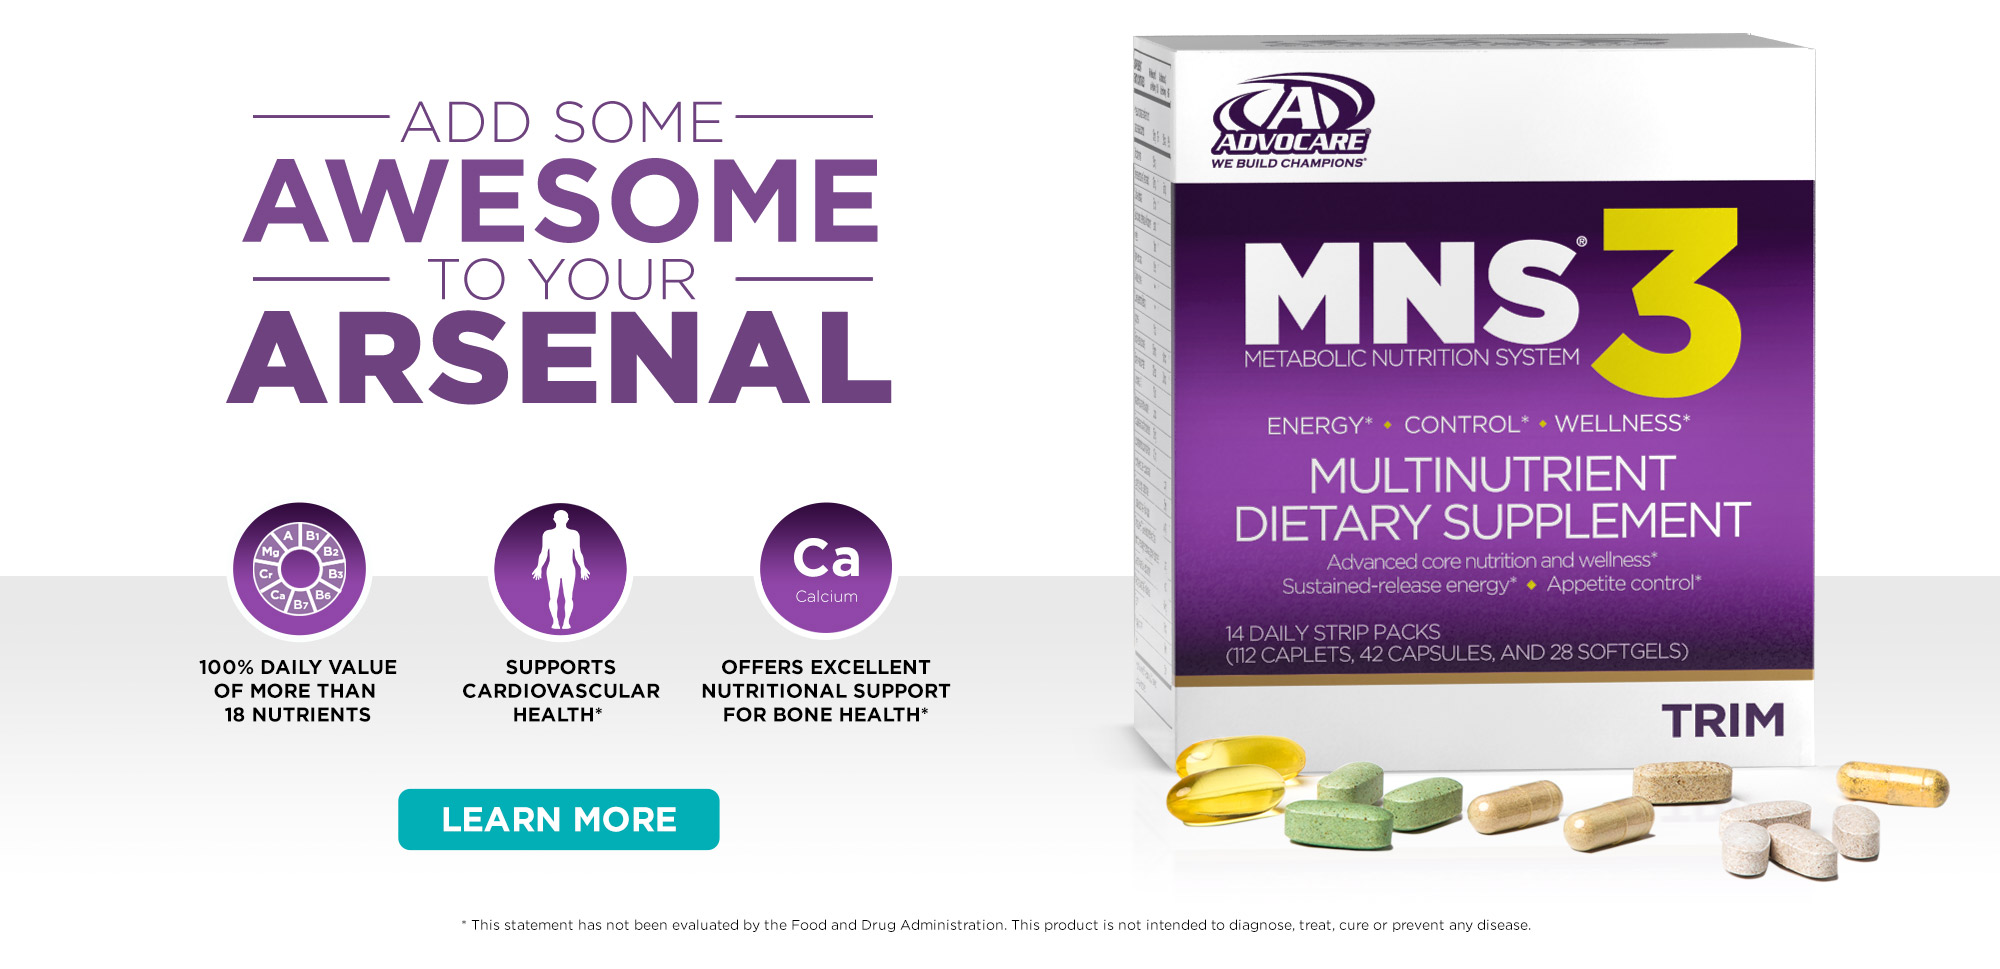 Advocare products cost - Rehydrate Orange